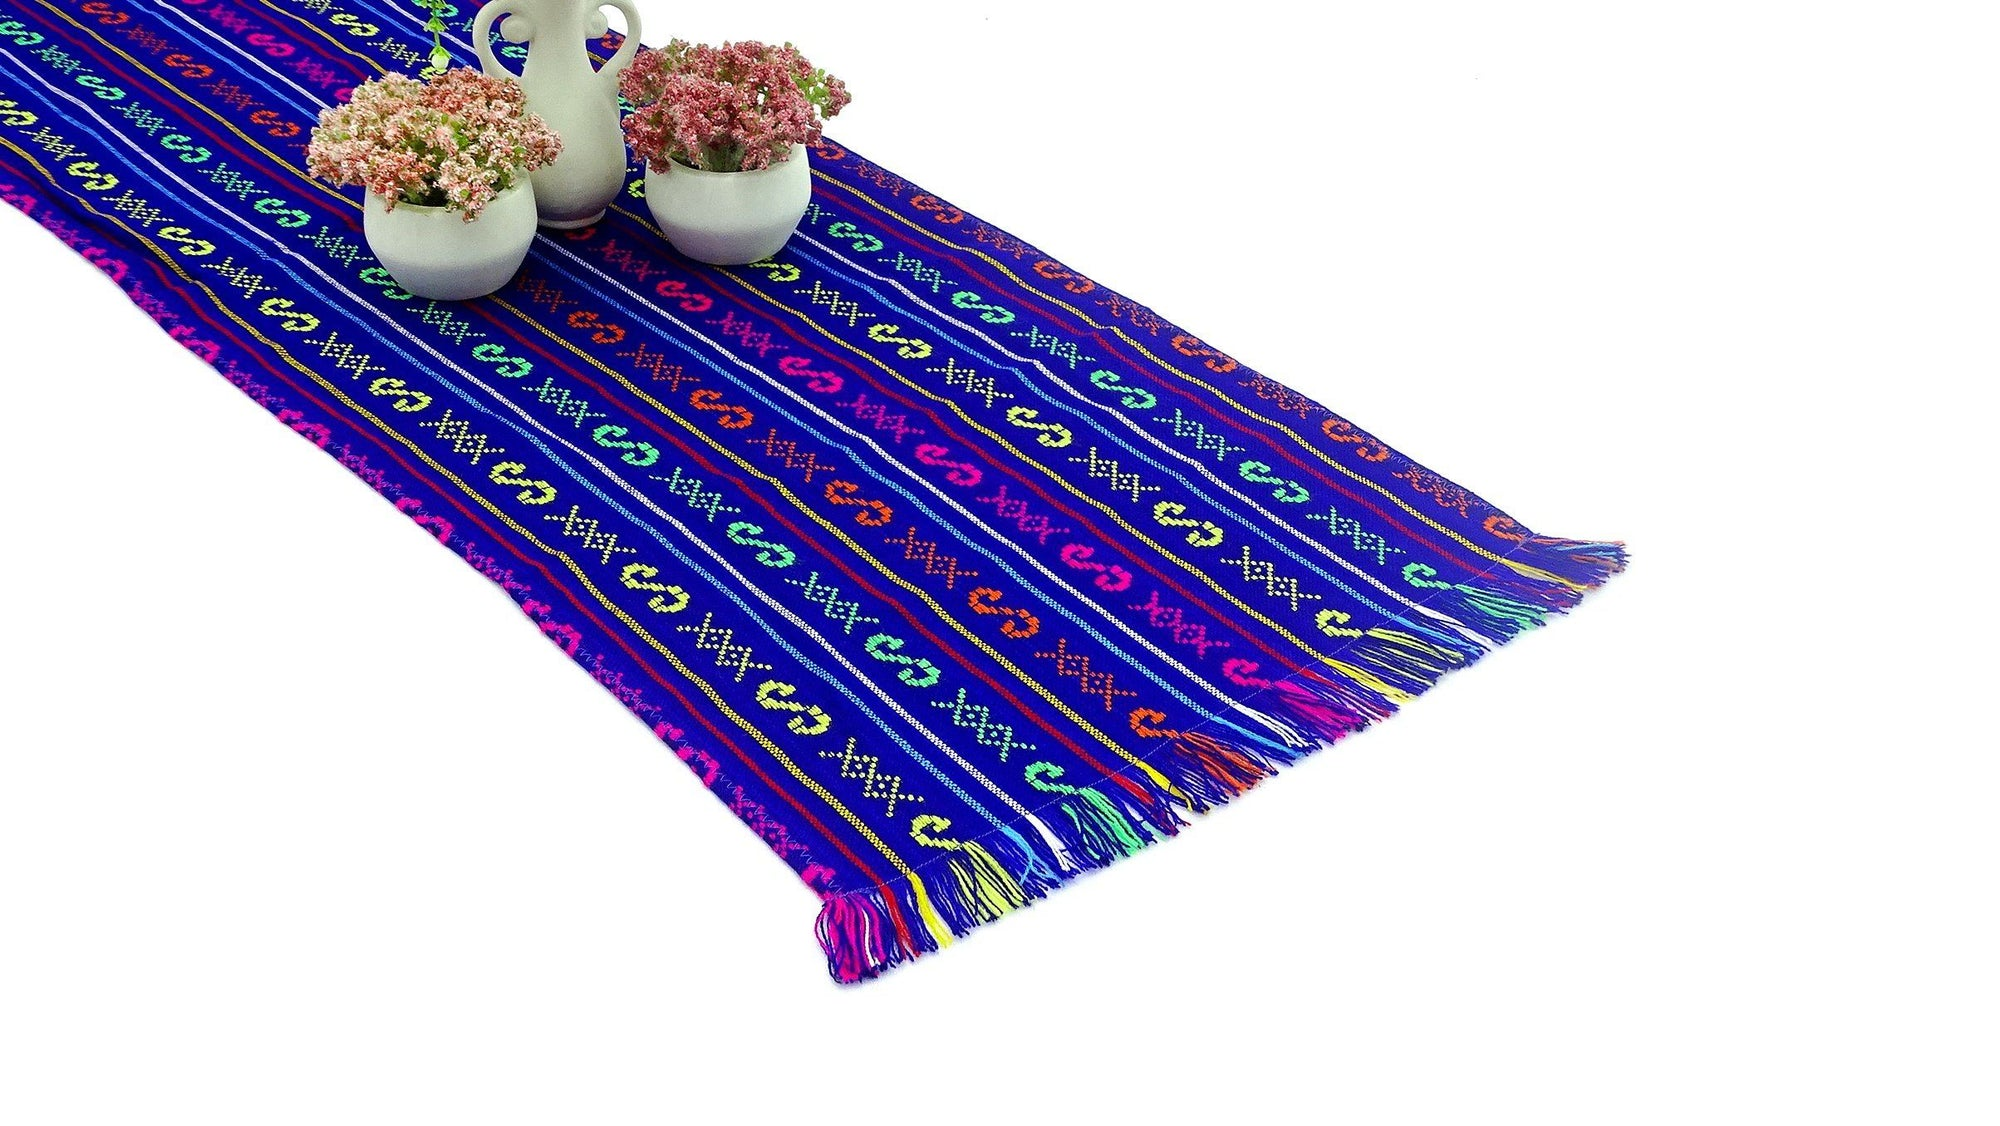 Mexican Table Runner - Mexican Table Runner, Purple Table Runner 14x72 Inches, Fiesta Decoration, Cinco De Mayo, Boho Chic Decor, Fiesta Decor Linens.